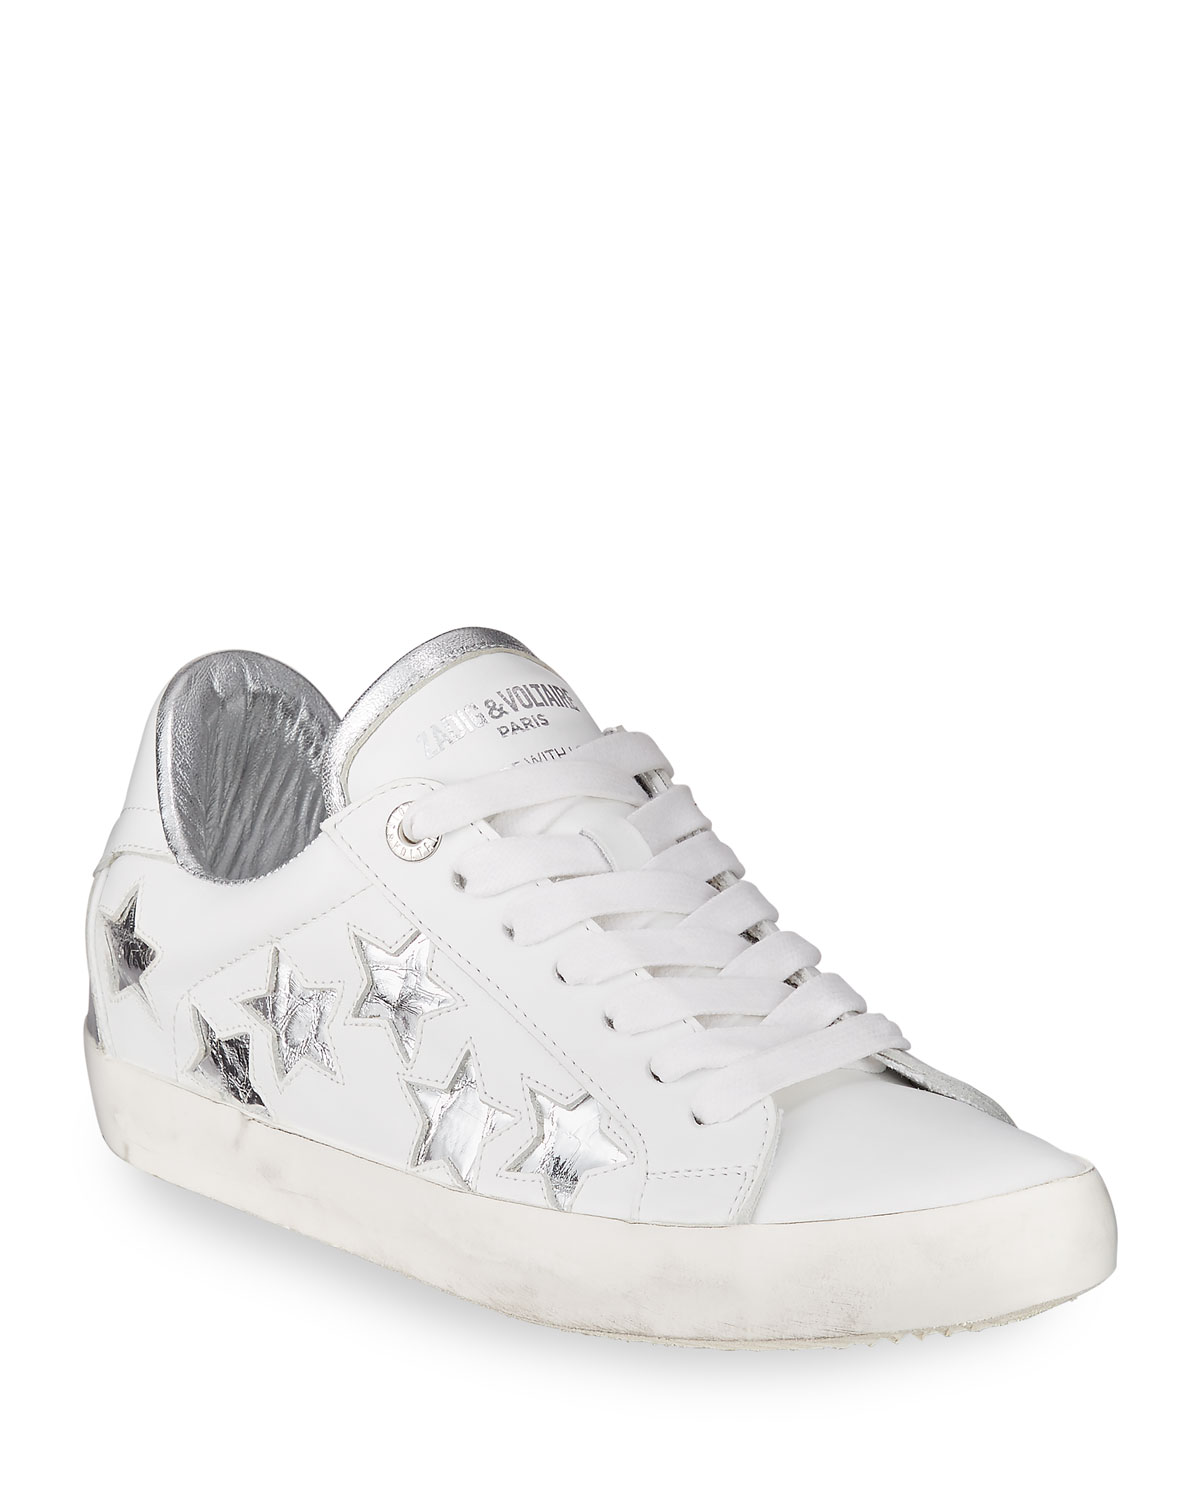 Zadig & Voltaire Sneakers USED STAR SNEAKERS